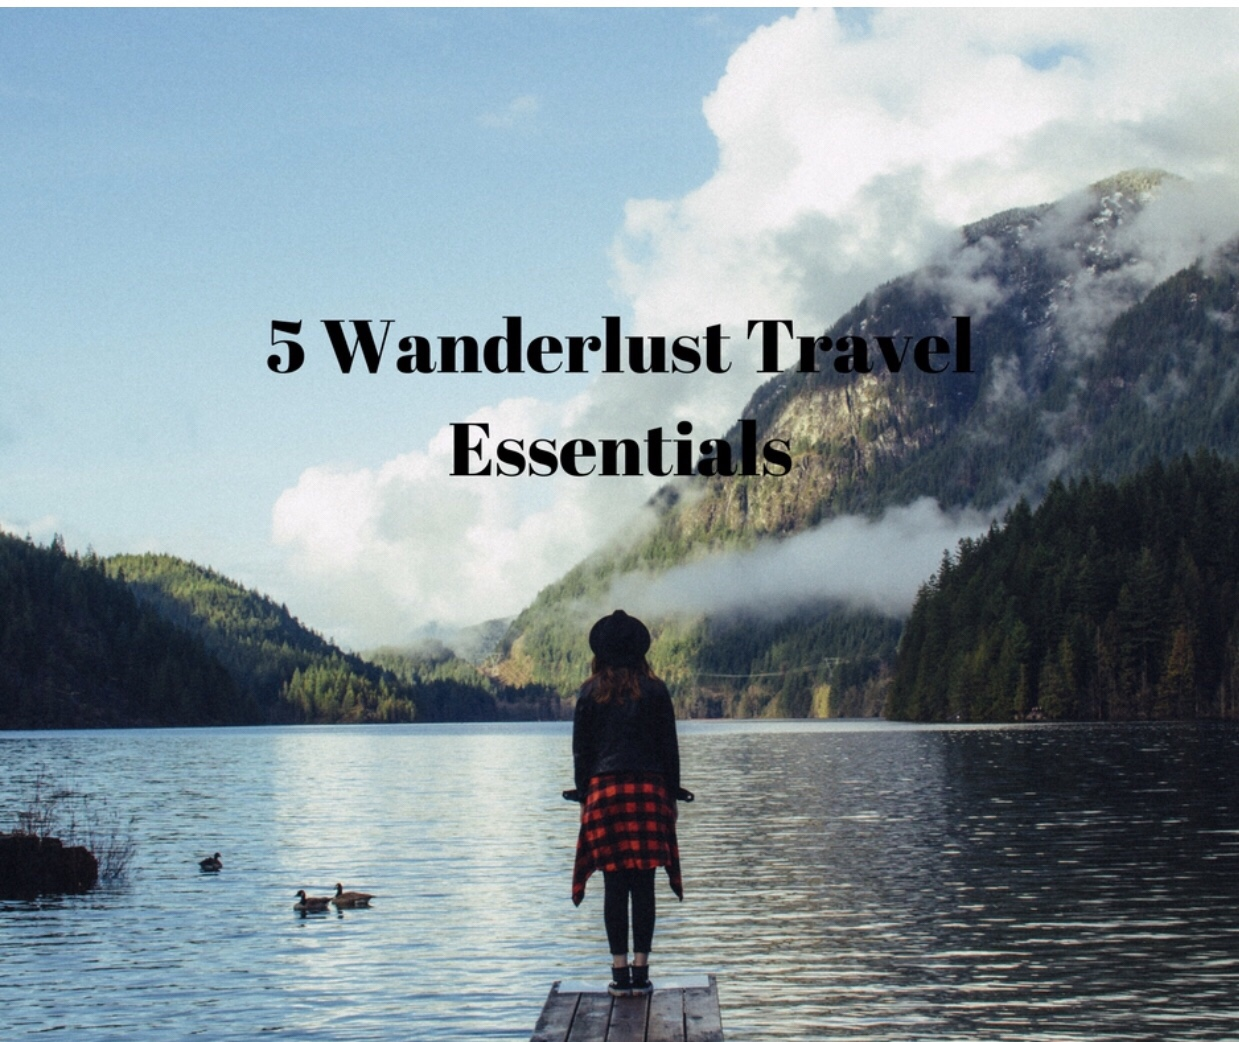 5 wanderlust travel essentials – guest blog article by Amy Mia Goldsmith